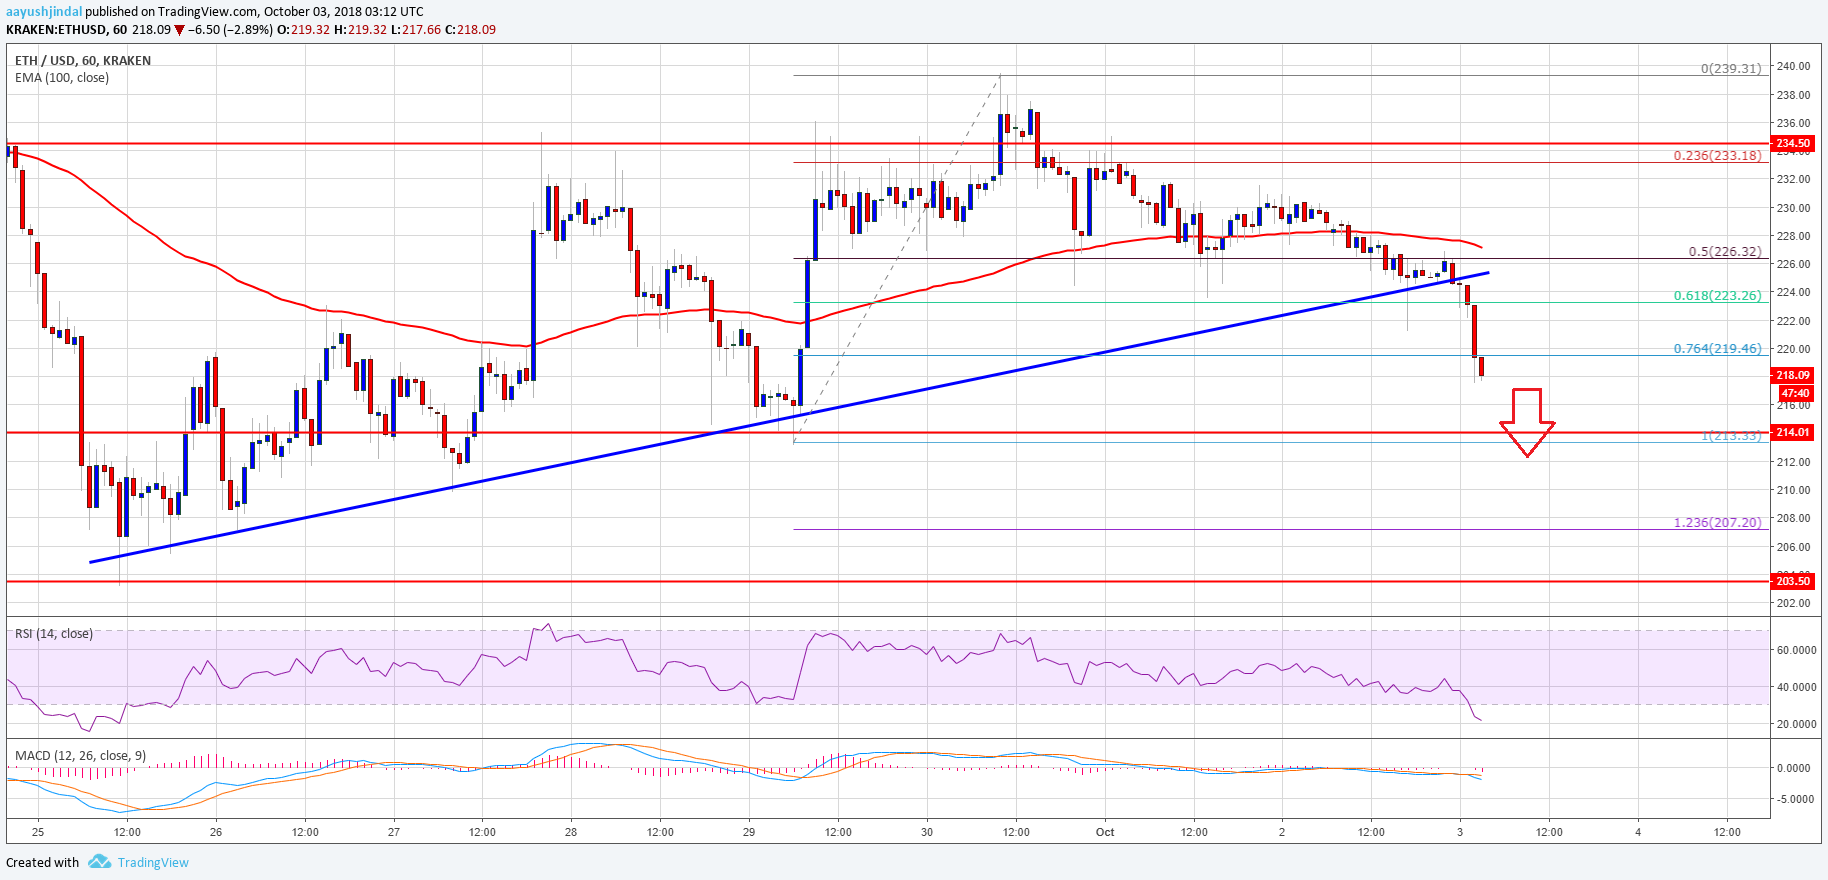 Ethereum Price Analysis: ETH/USD Breakdown Could Reach $203-207 3